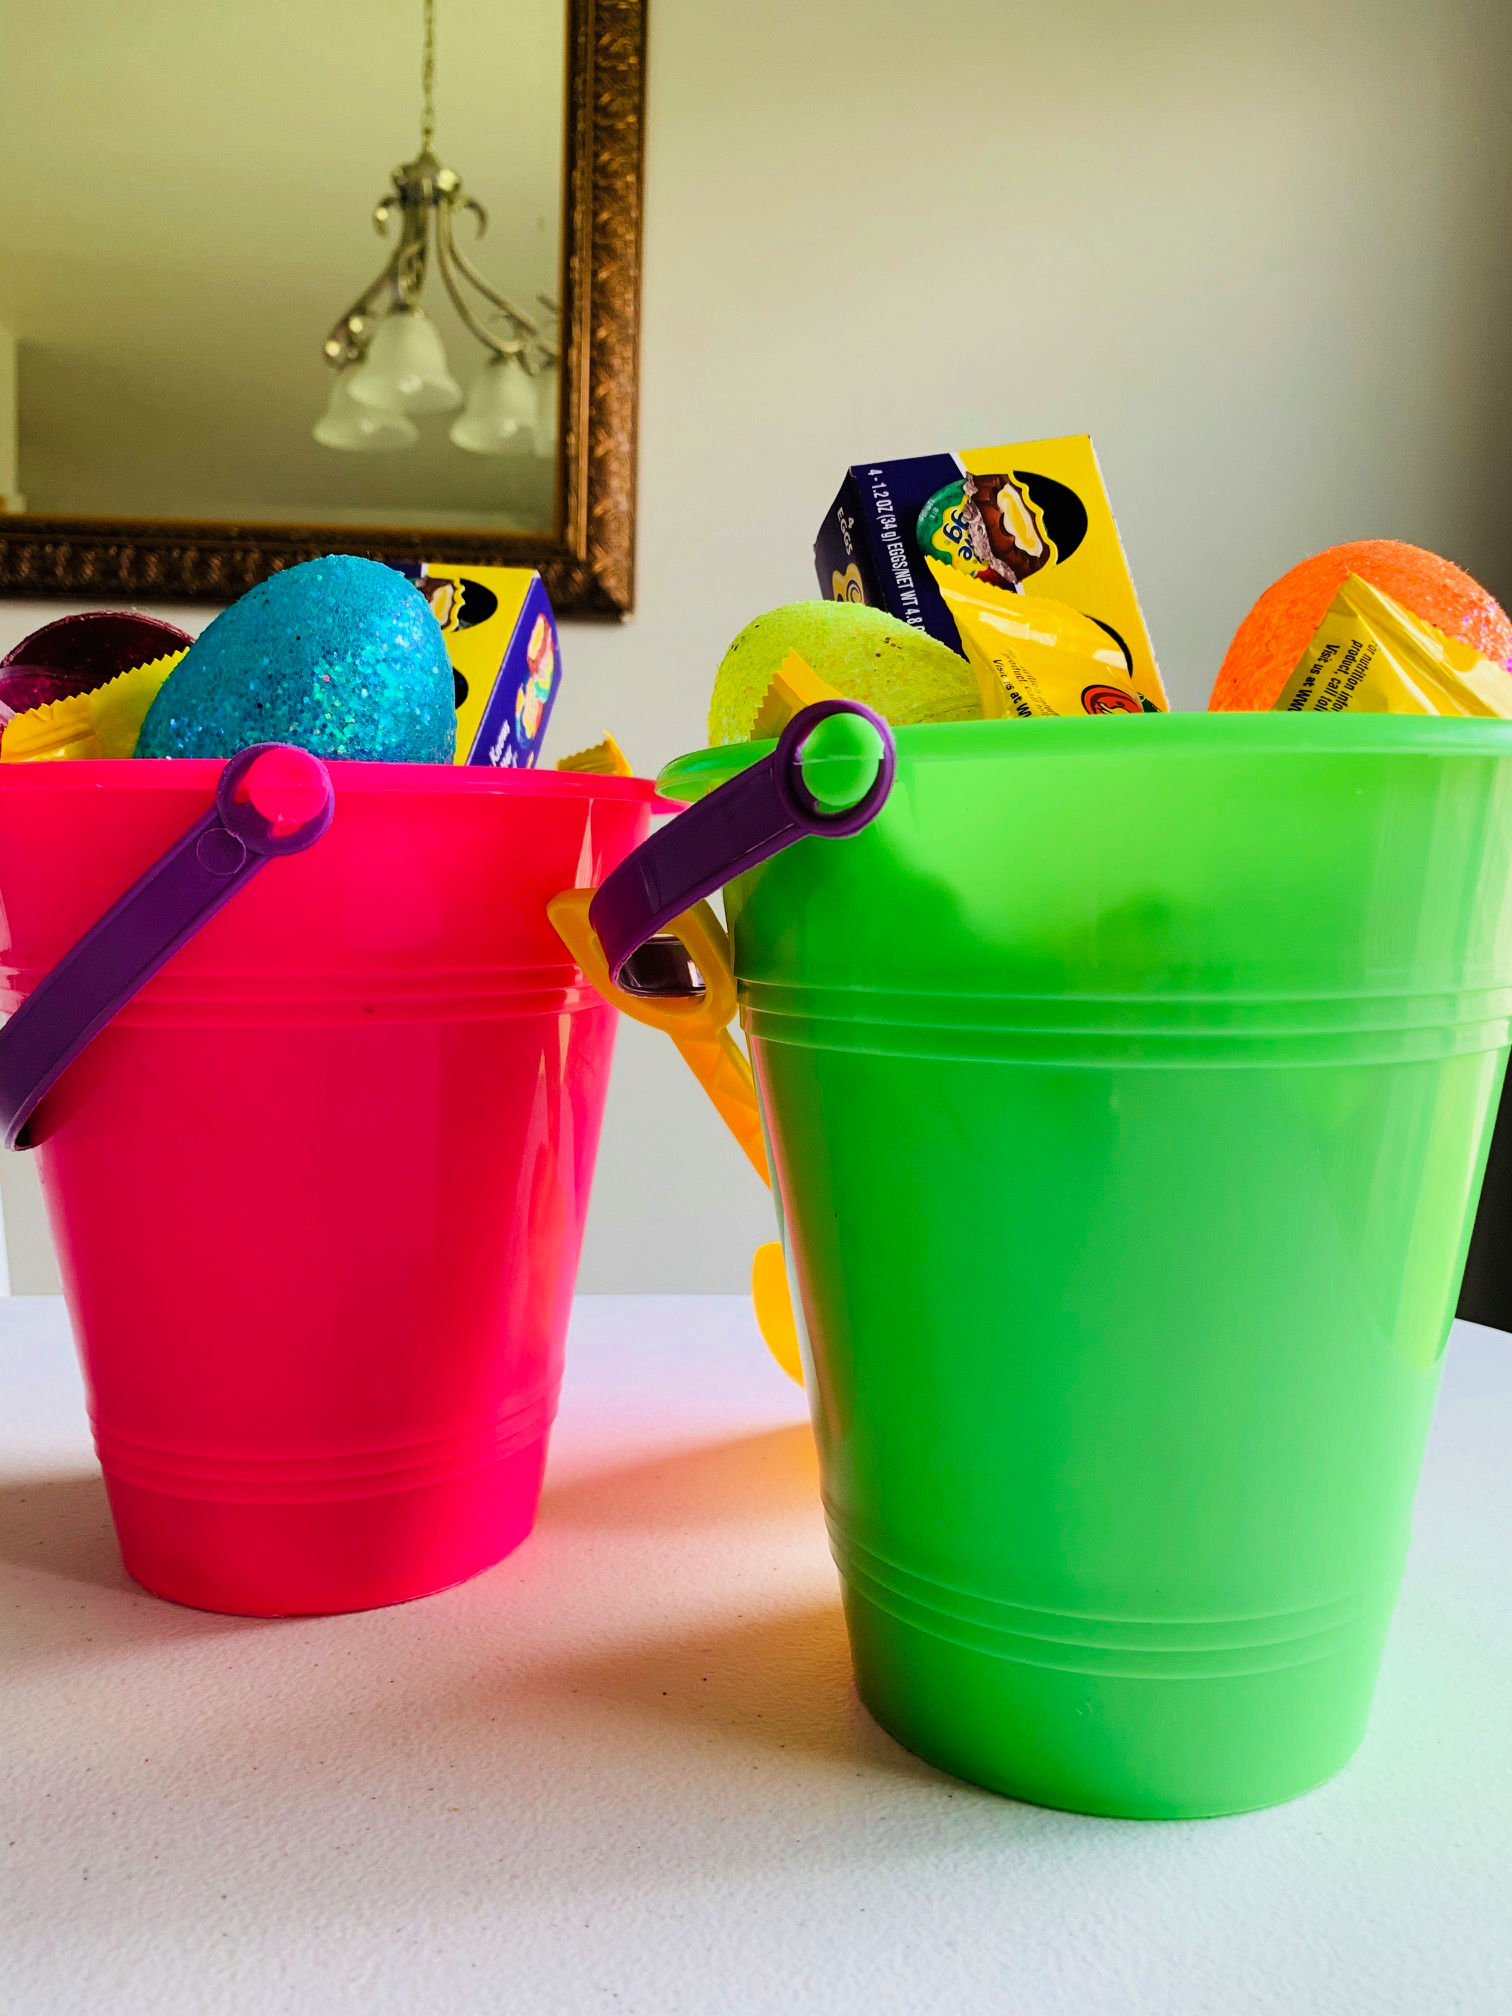 Do you have to celebrate Easter while stuck at home this year? Don't worry! Here are 4 hacks every parent can use right now to make it special.